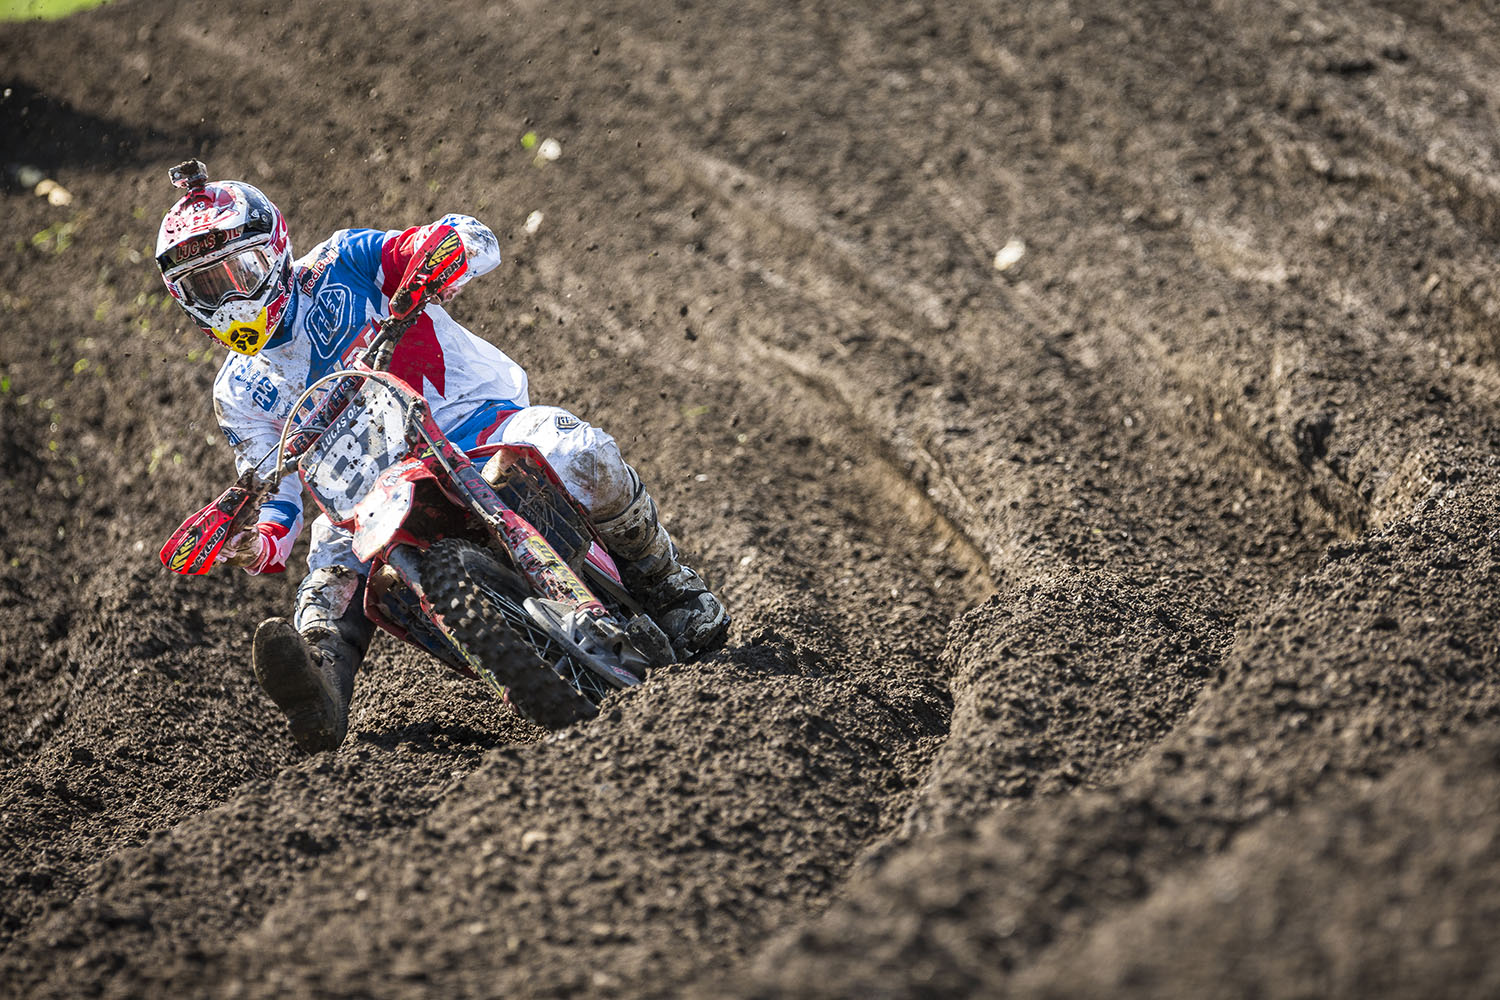 Shane McElrath competes in the AMA Pro Motocross Championships at Unadilla Valley Sports Center in New Berlin, New York on August 9th, 2014.